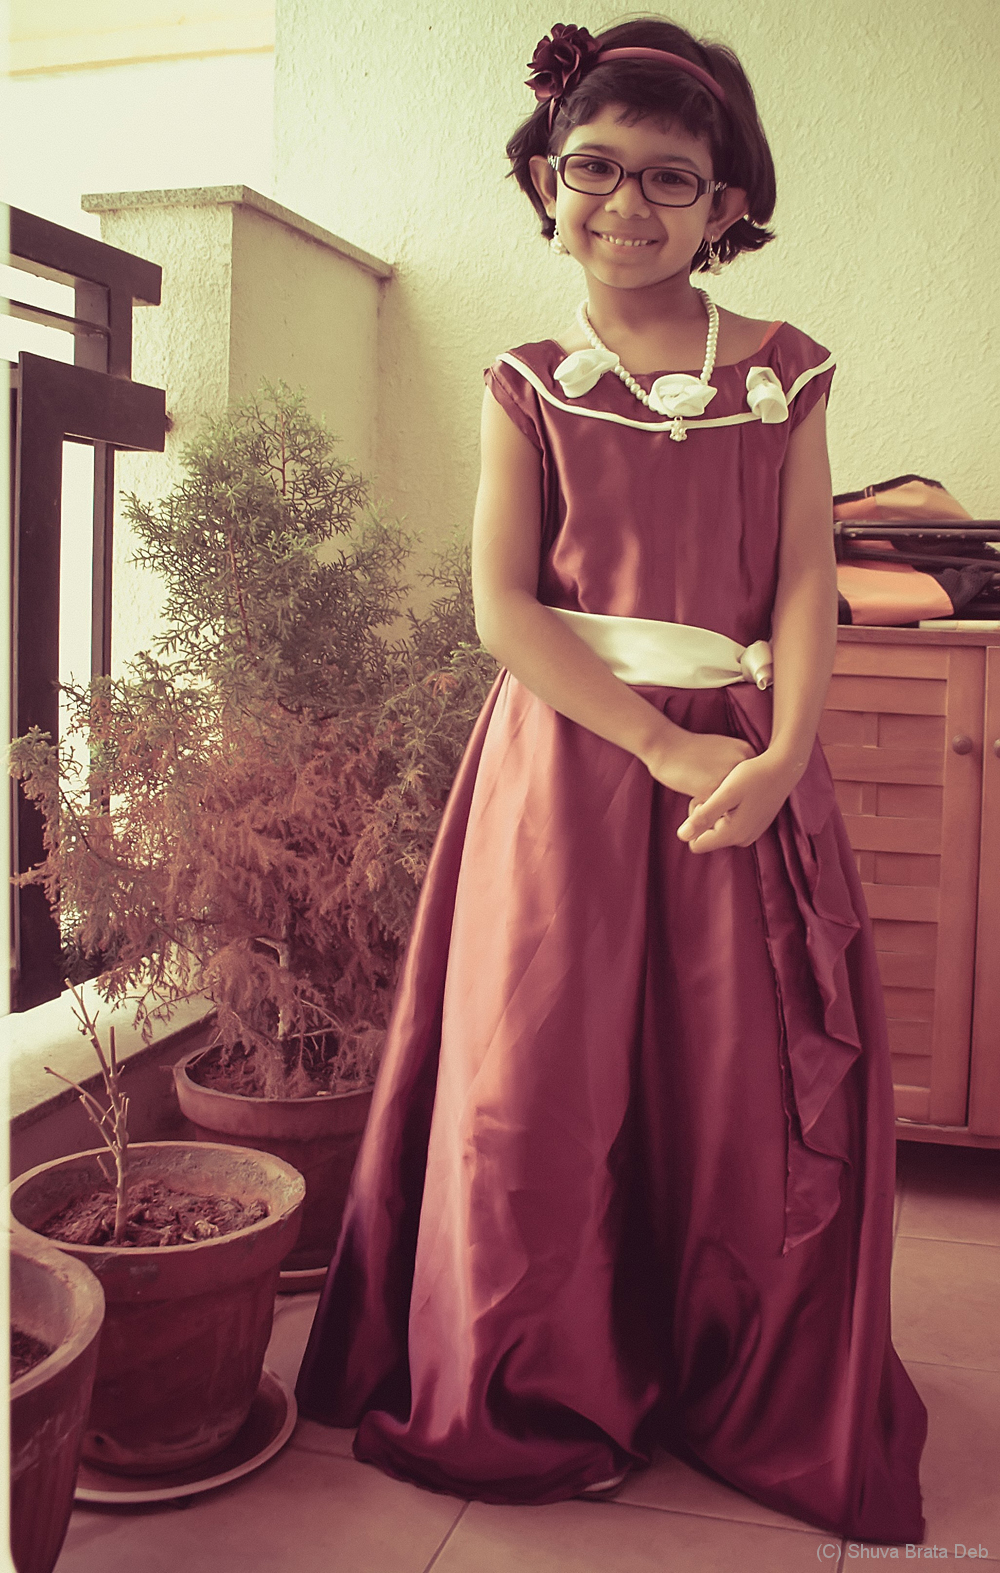 In her school act dress